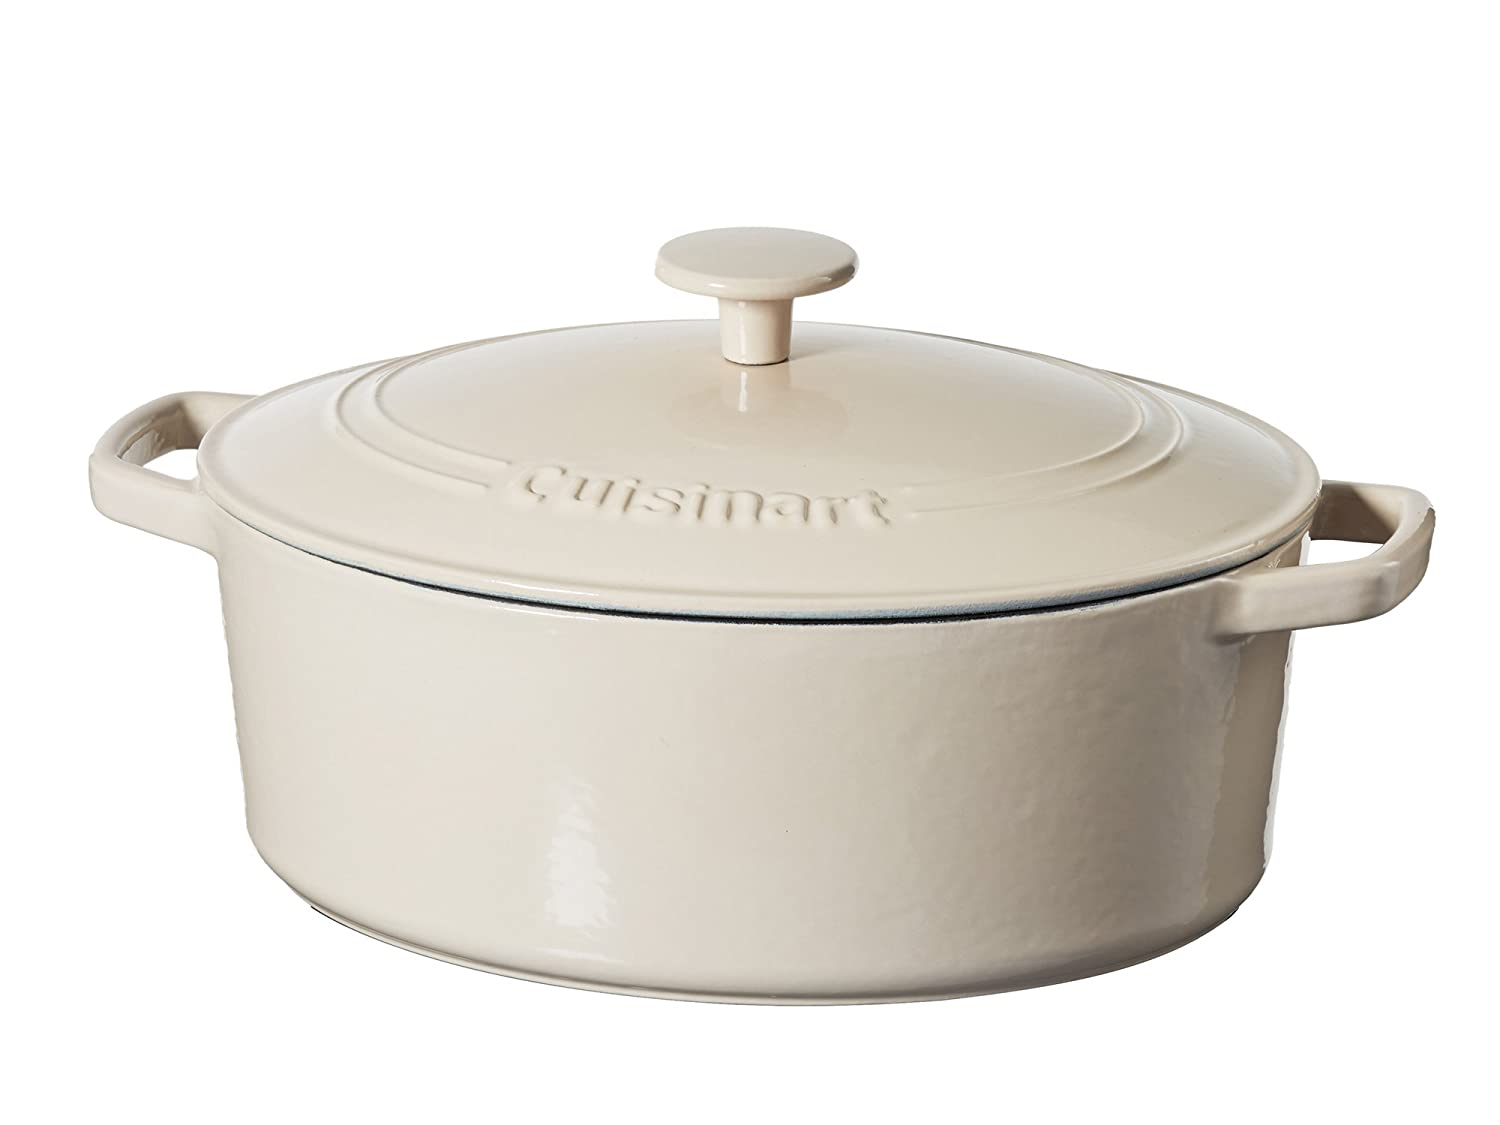 Cuisinart 5.5 Qt. Casserole Cast Iron, Cream